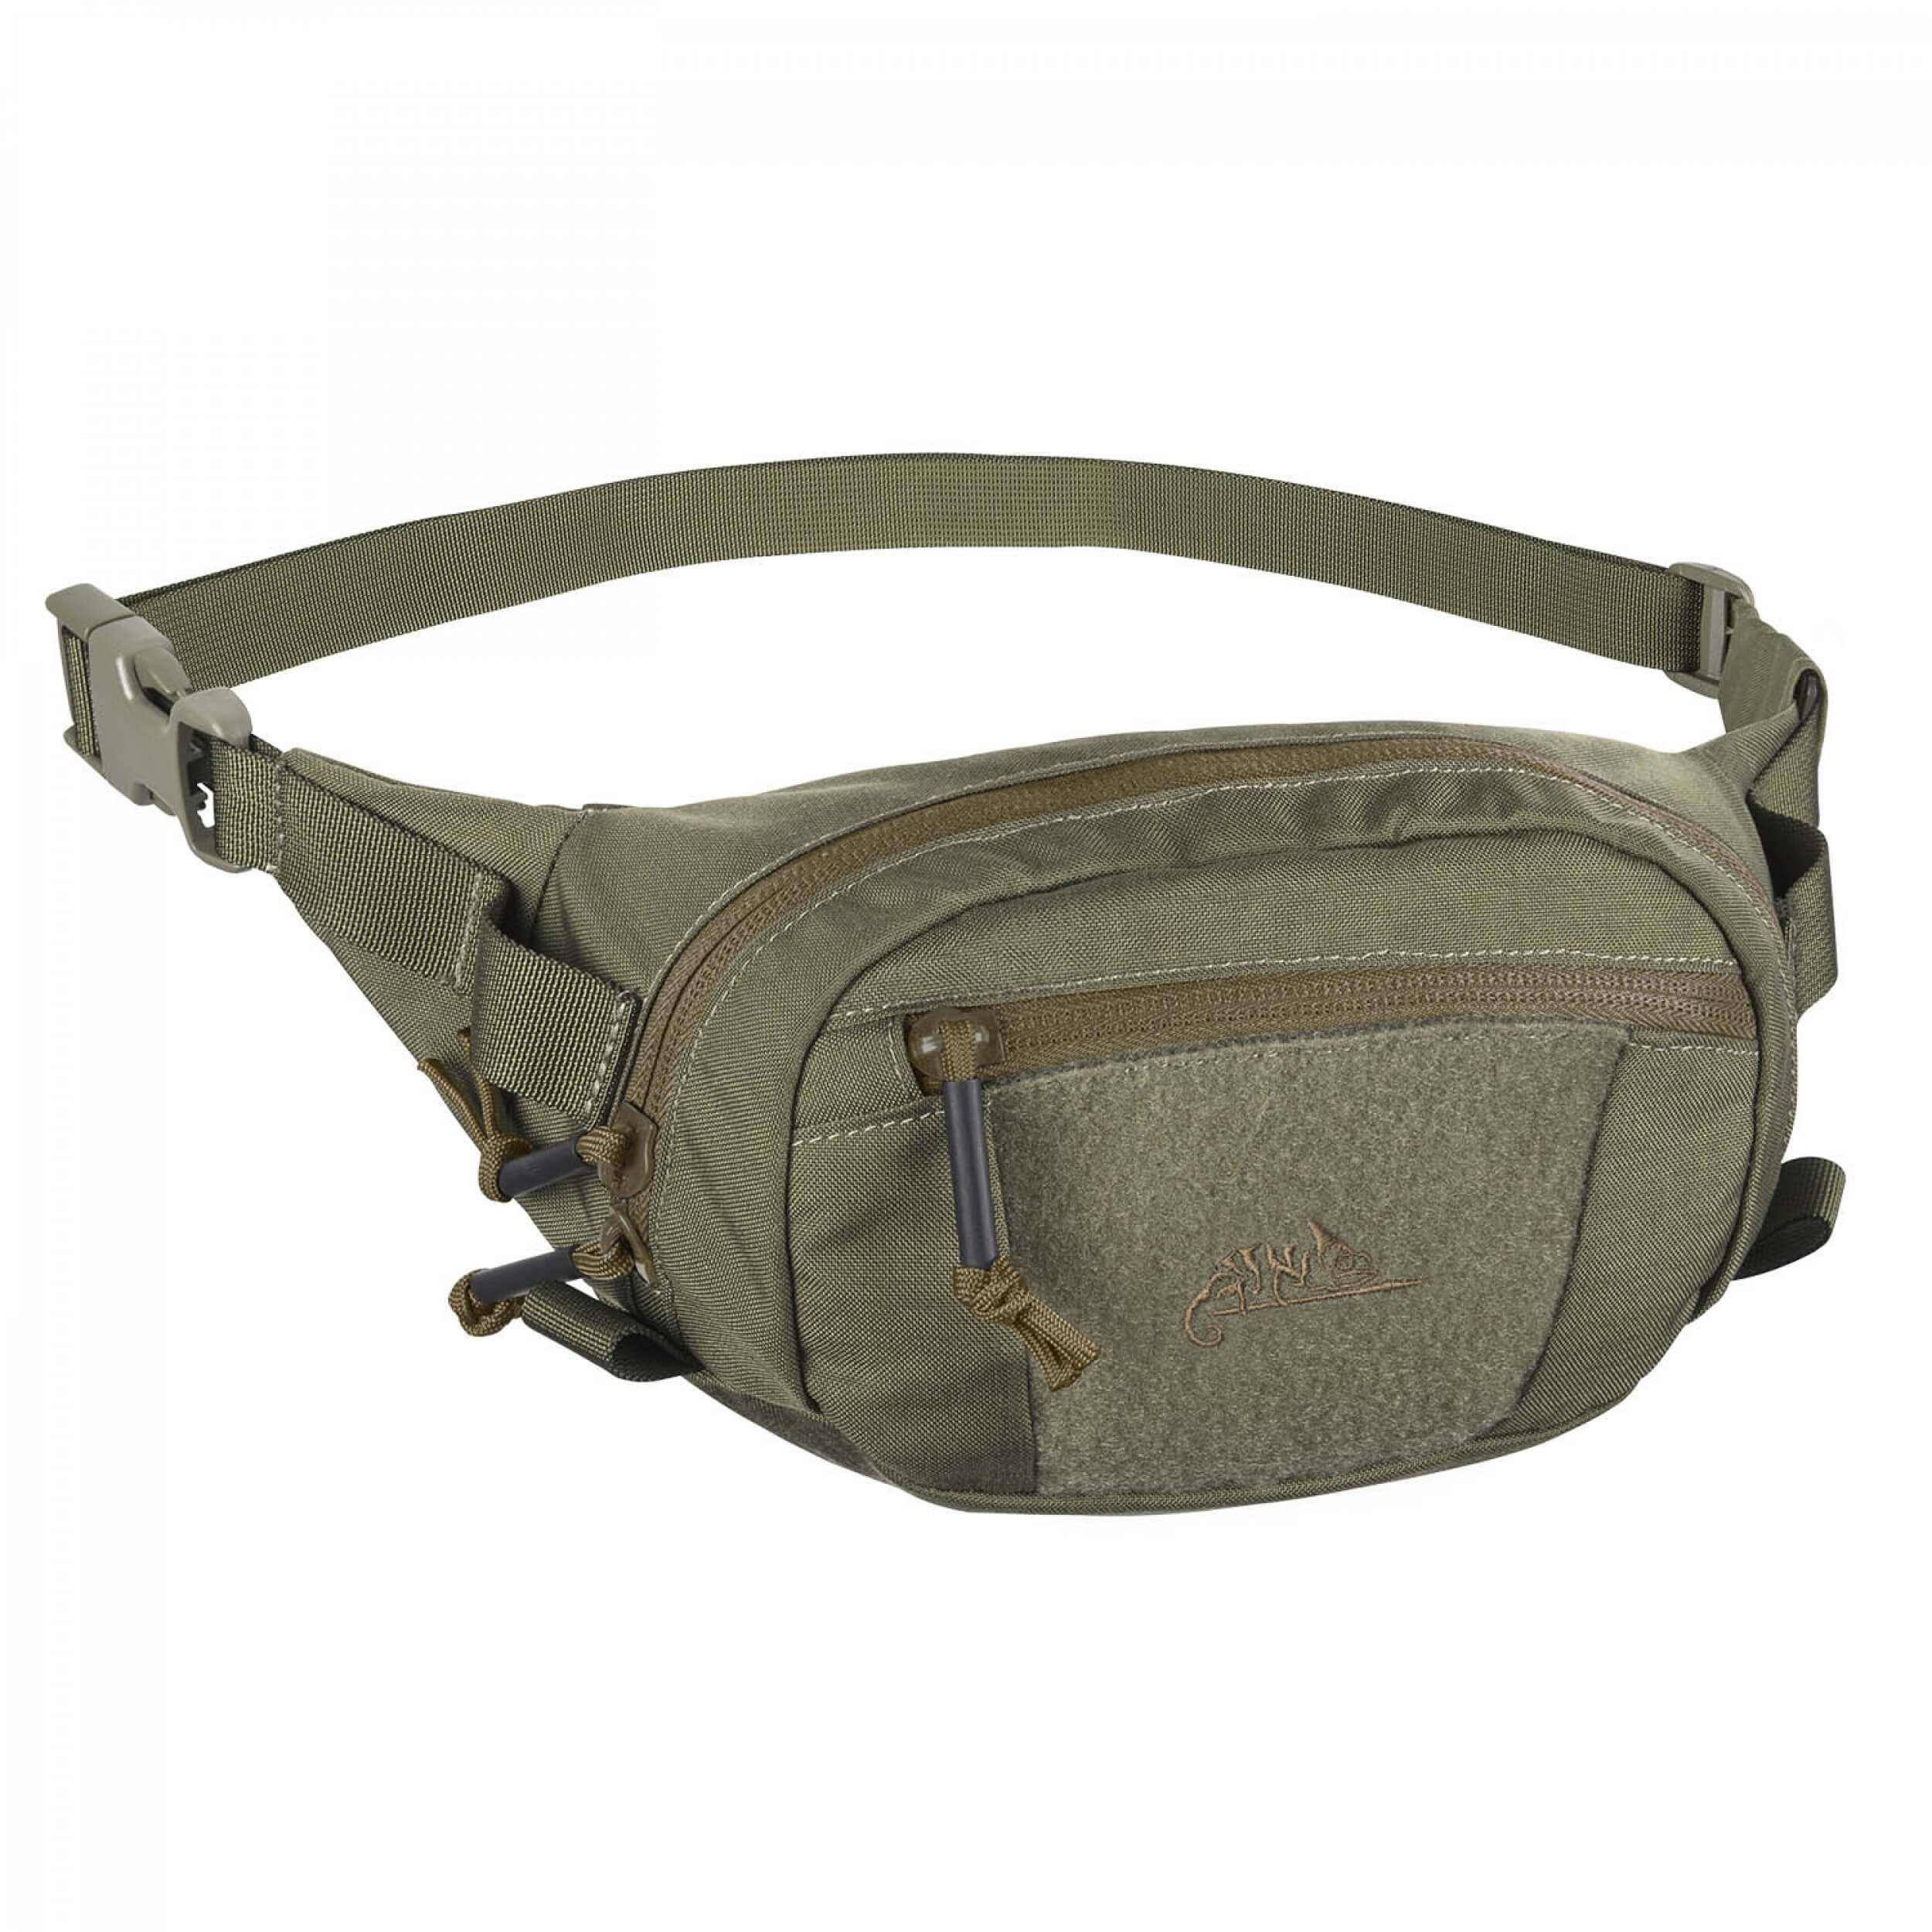 Helikon-Tex Waist Pack Possum Adaptive Green / Coyote A